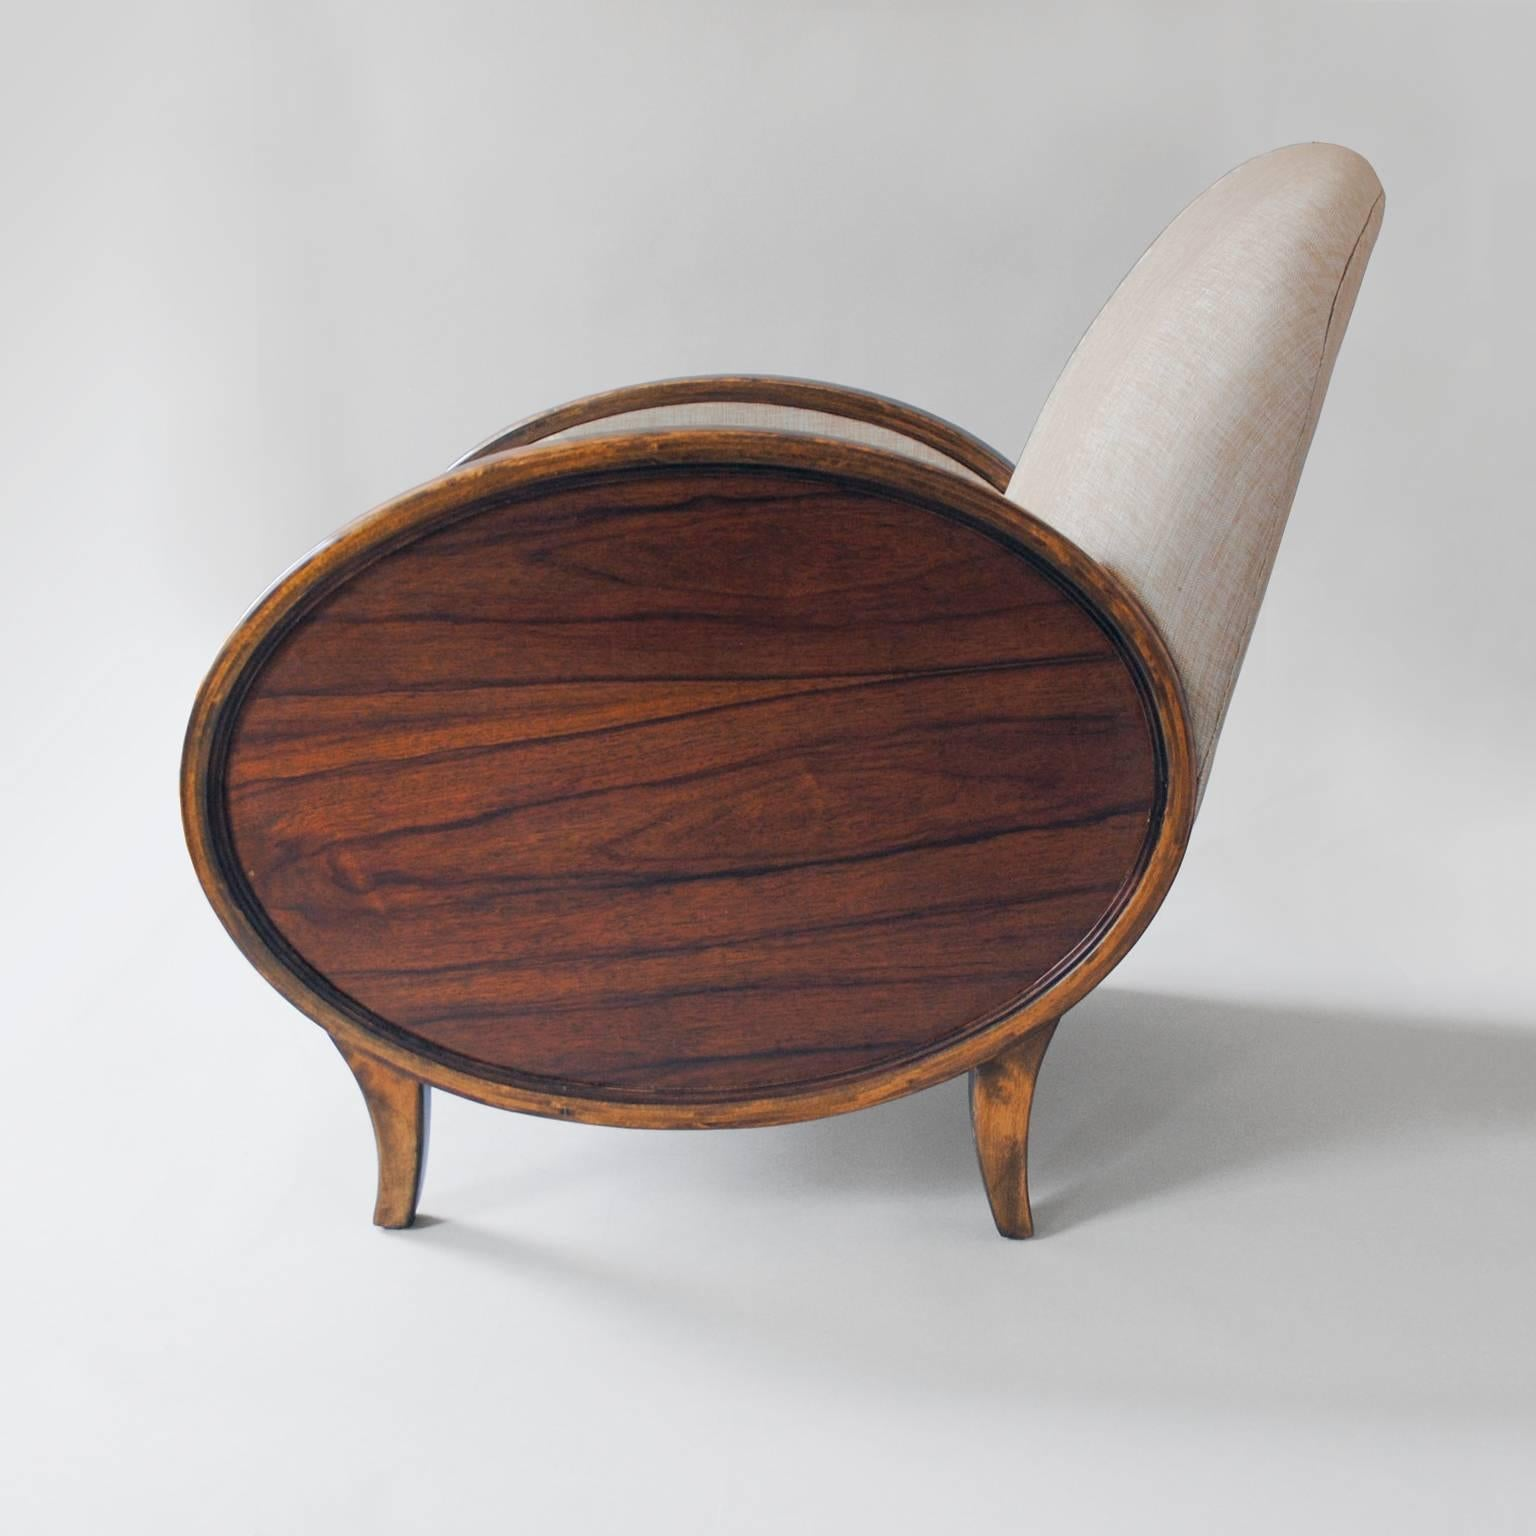 Charmant Scandinavian Modern Swedish Art Deco Chairs With Oval Rosewood Panels For  Sale 1